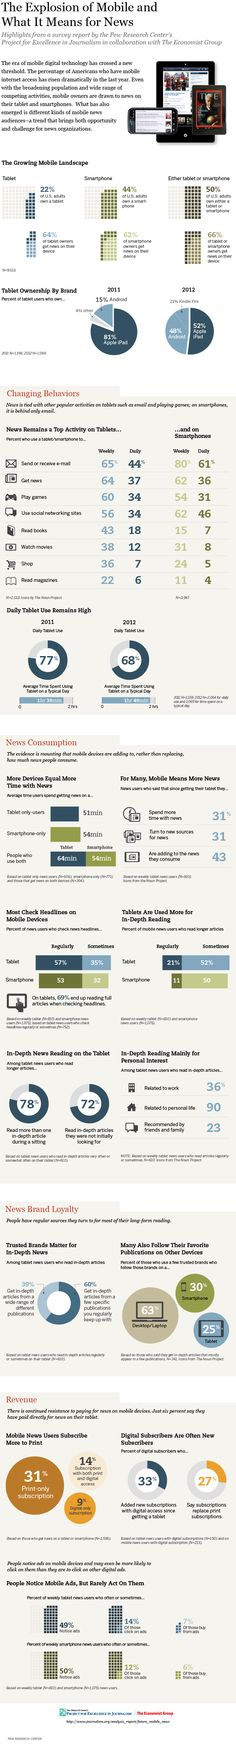 The explosion of mobile and what it means for news #infographic